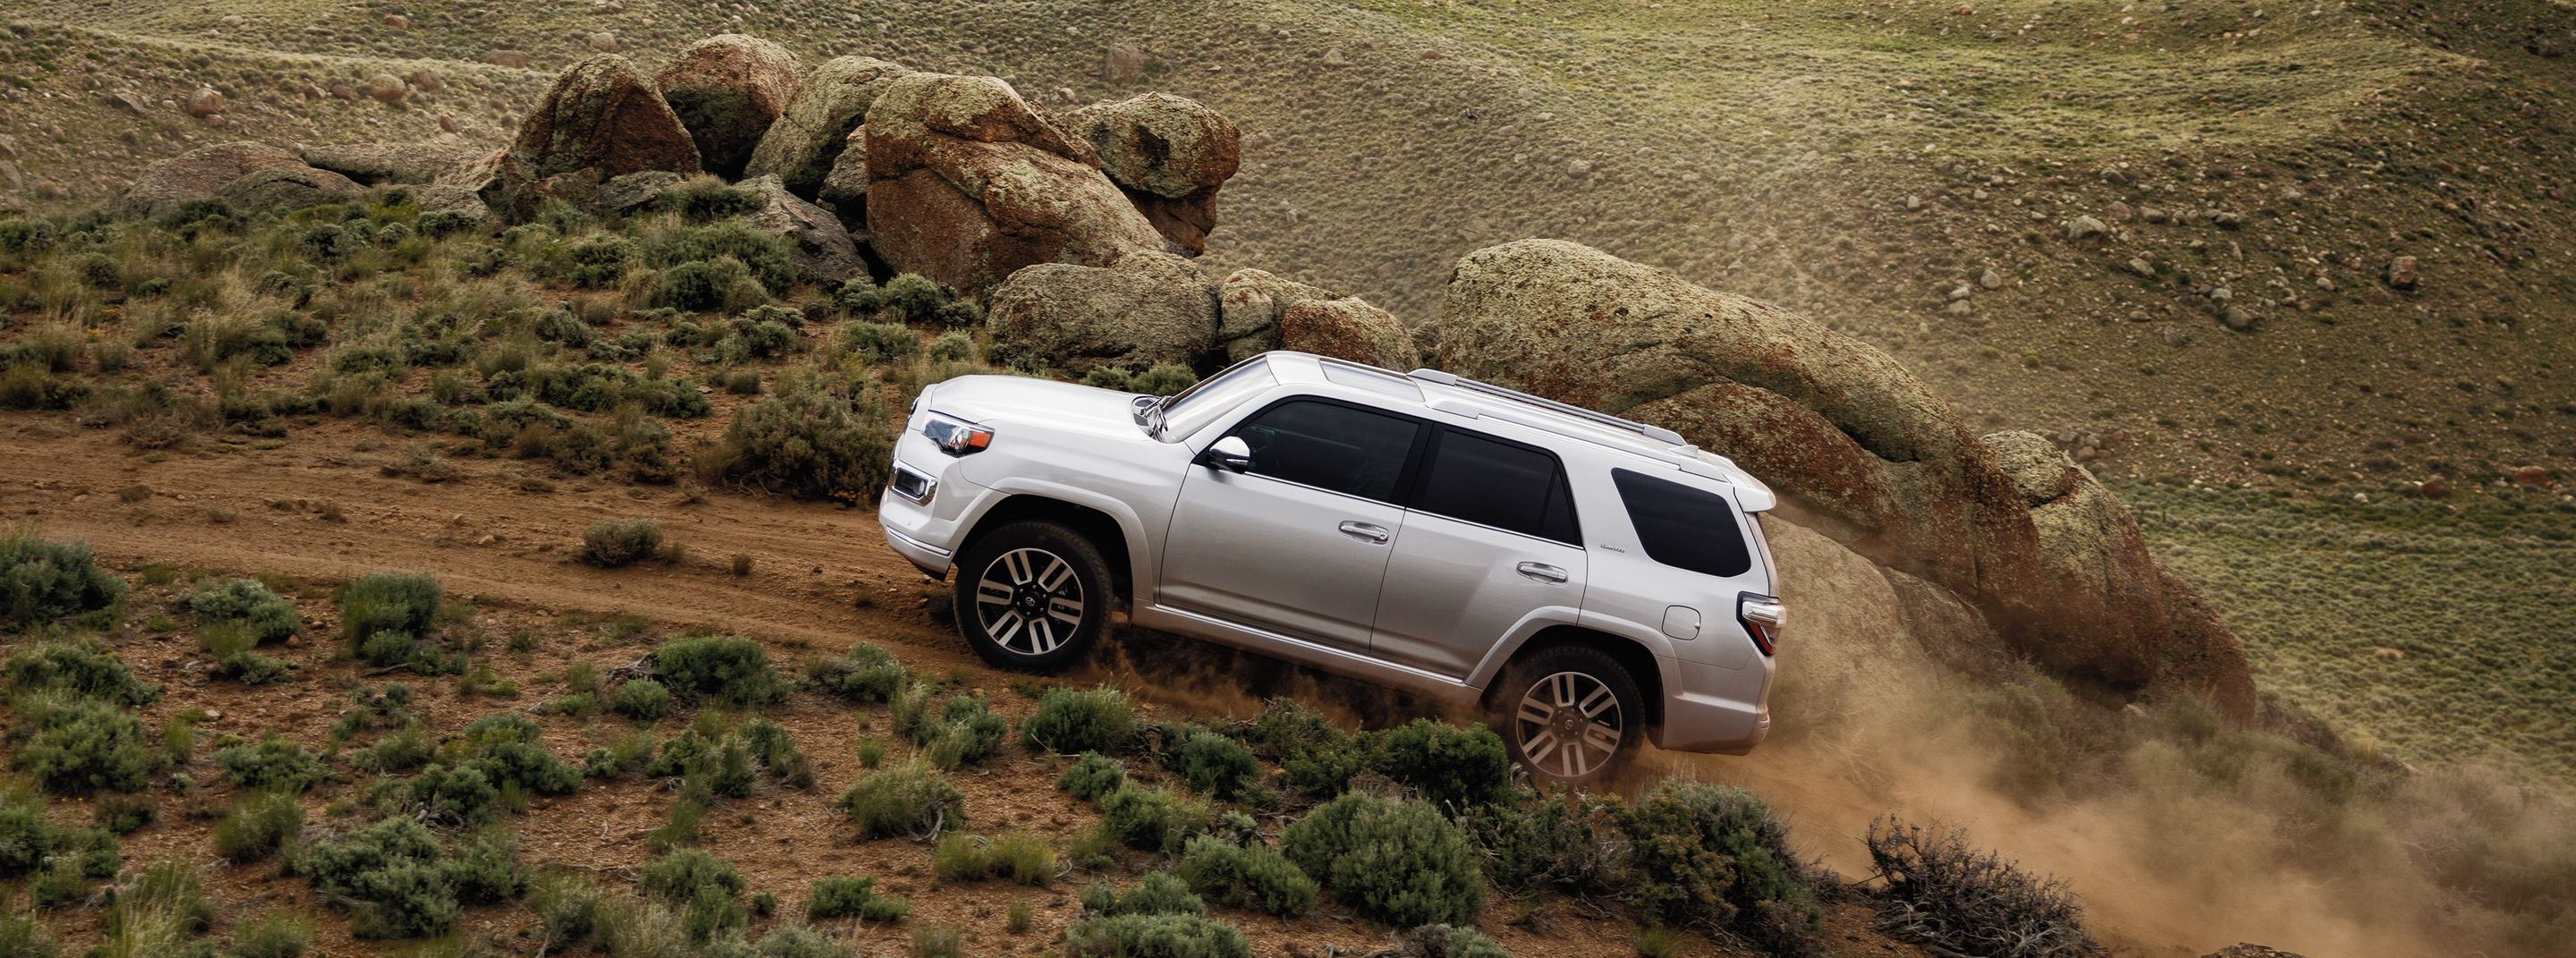 2020 Toyota 4Runner for Sale near Prairie Village, KS, 66206